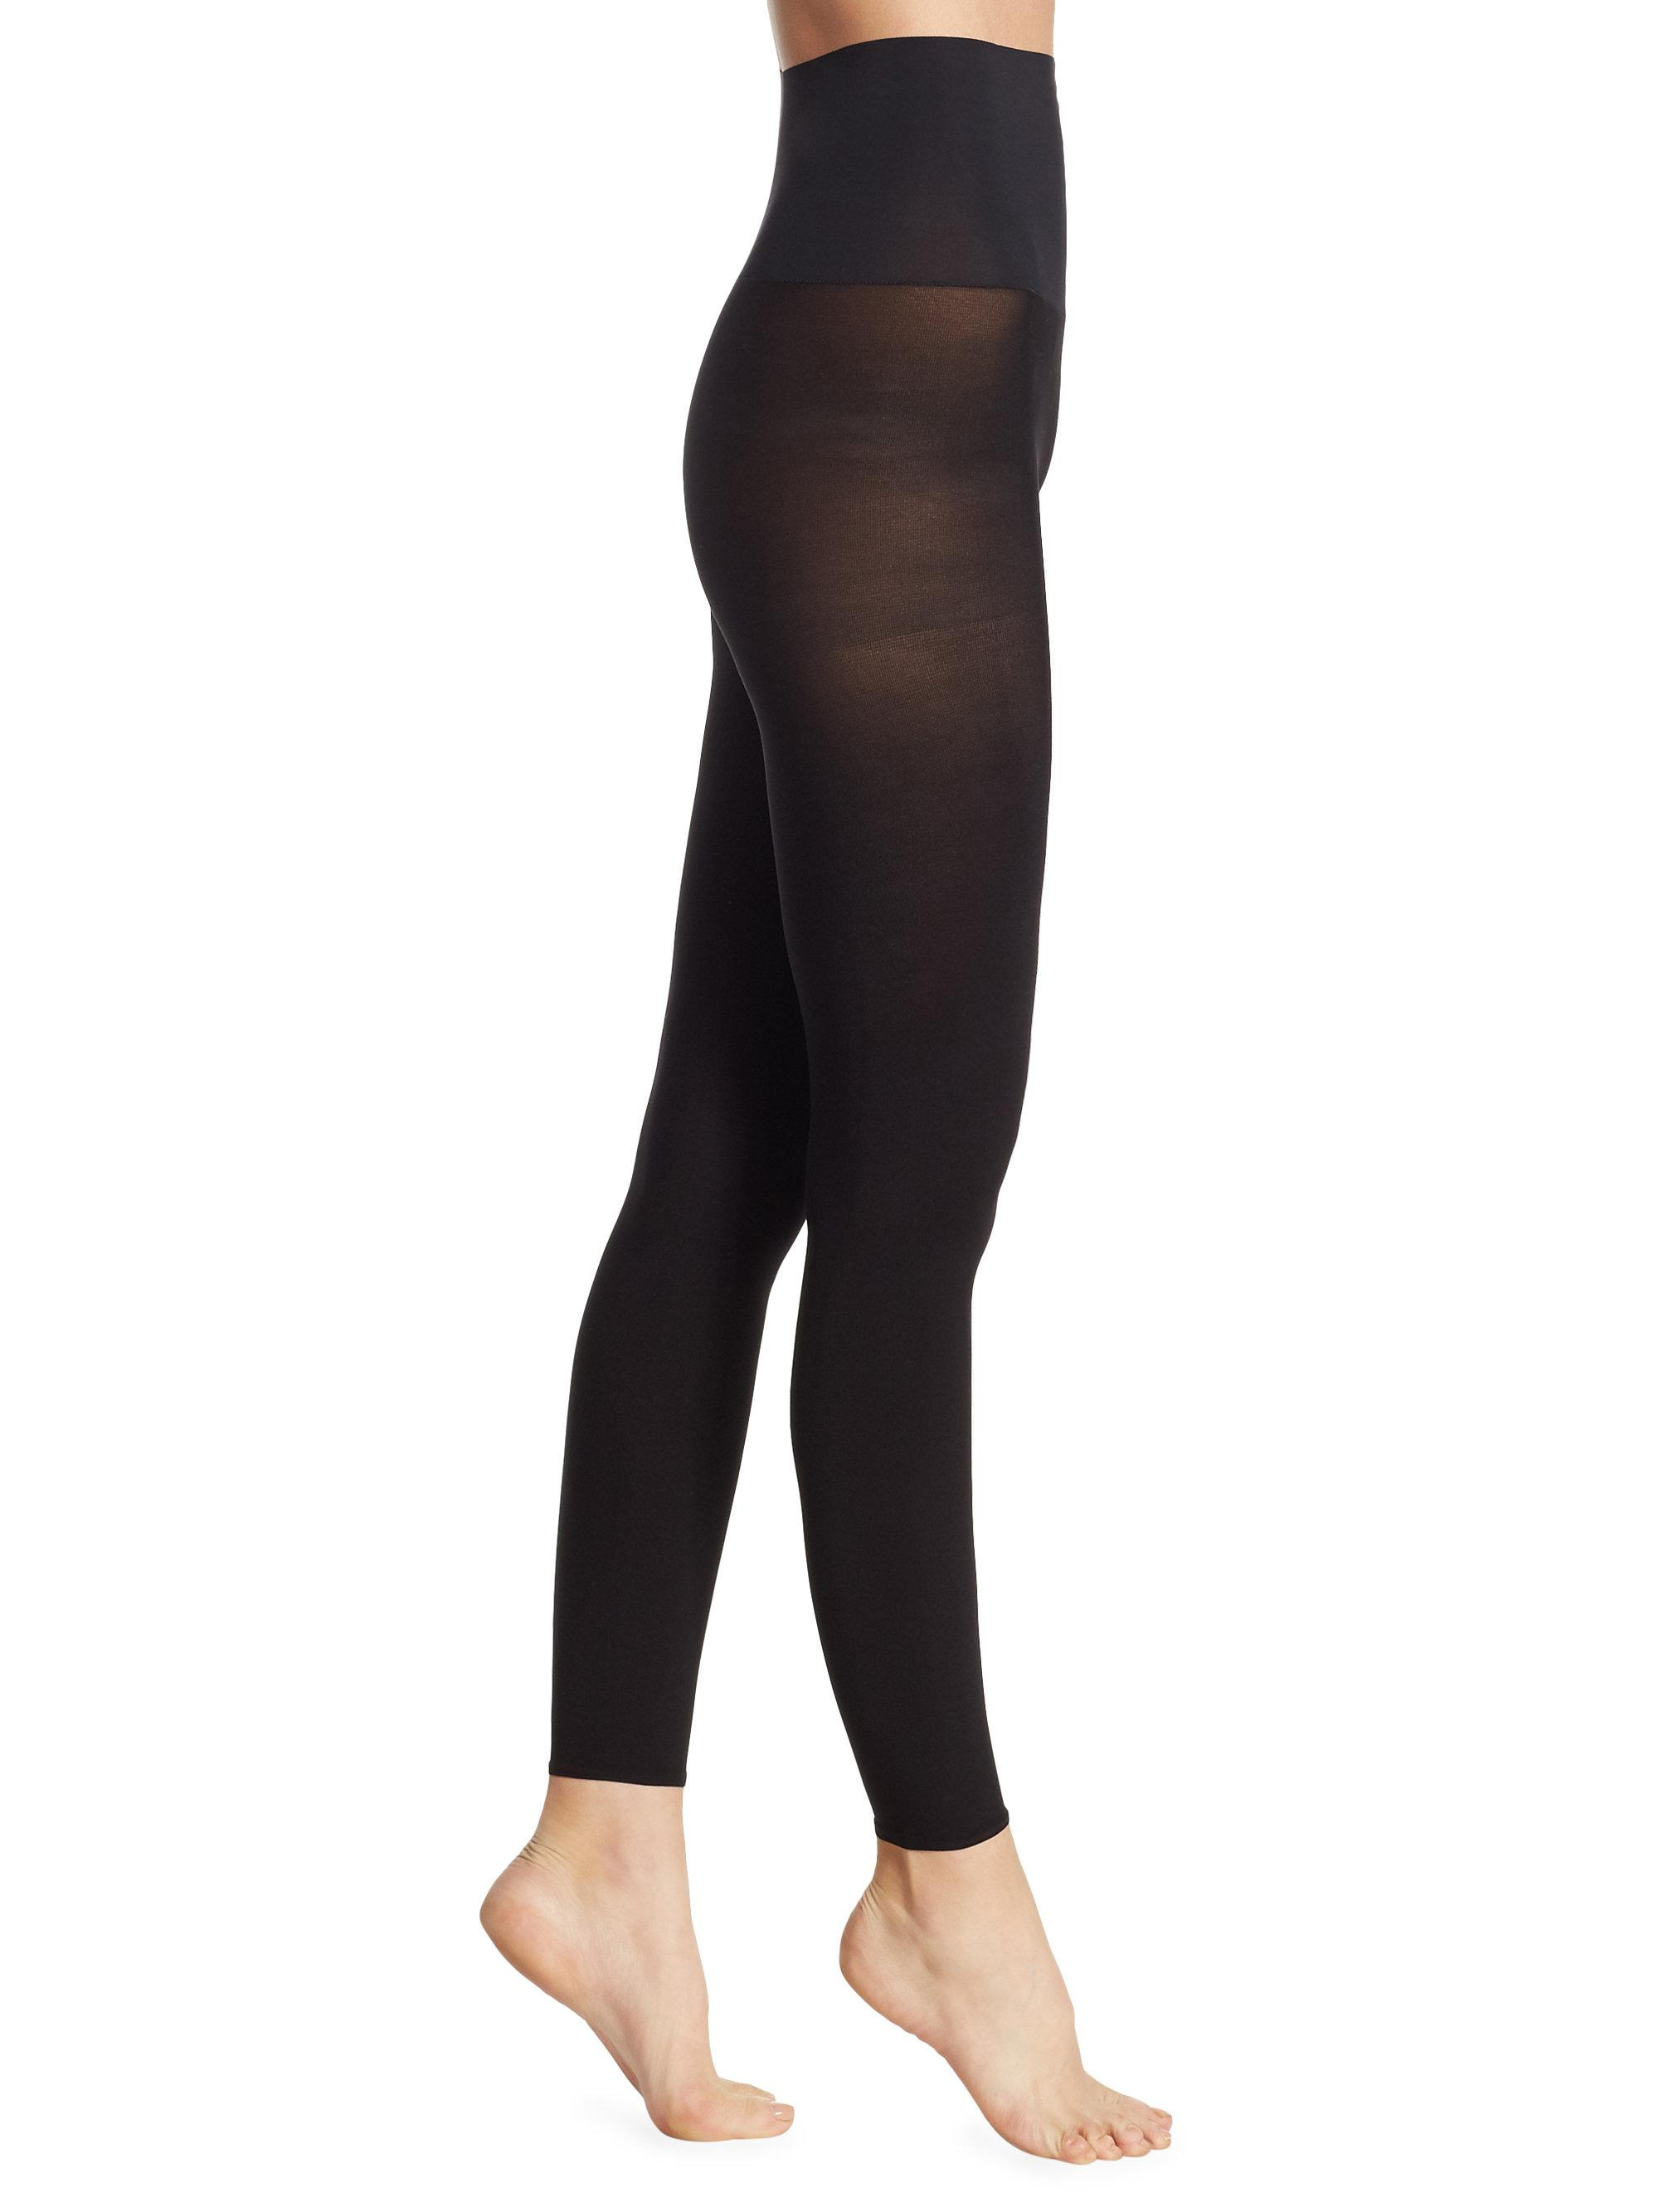 b31891b6ef892 Commando - Black Ultimate Opaque Matte Footless Tights - Lyst. View  fullscreen